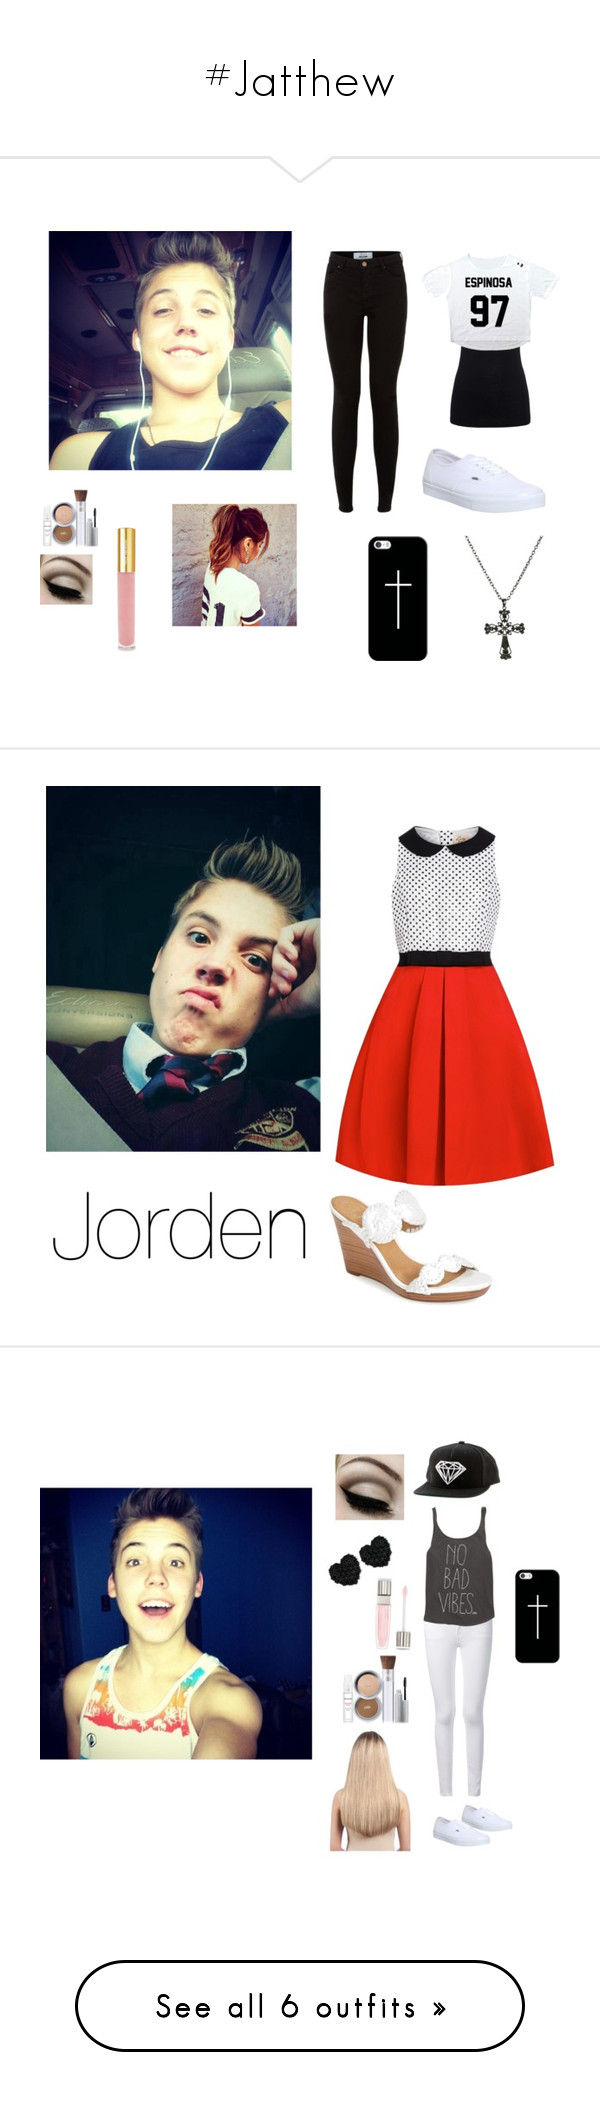 """""""#Jatthew"""" by daisy0320 ❤ liked on Polyvore featuring Juvia, Vans, PurMinerals, Wet Seal, Isaac Mizrahi, Casetify, women's clothing, women, female and woman"""